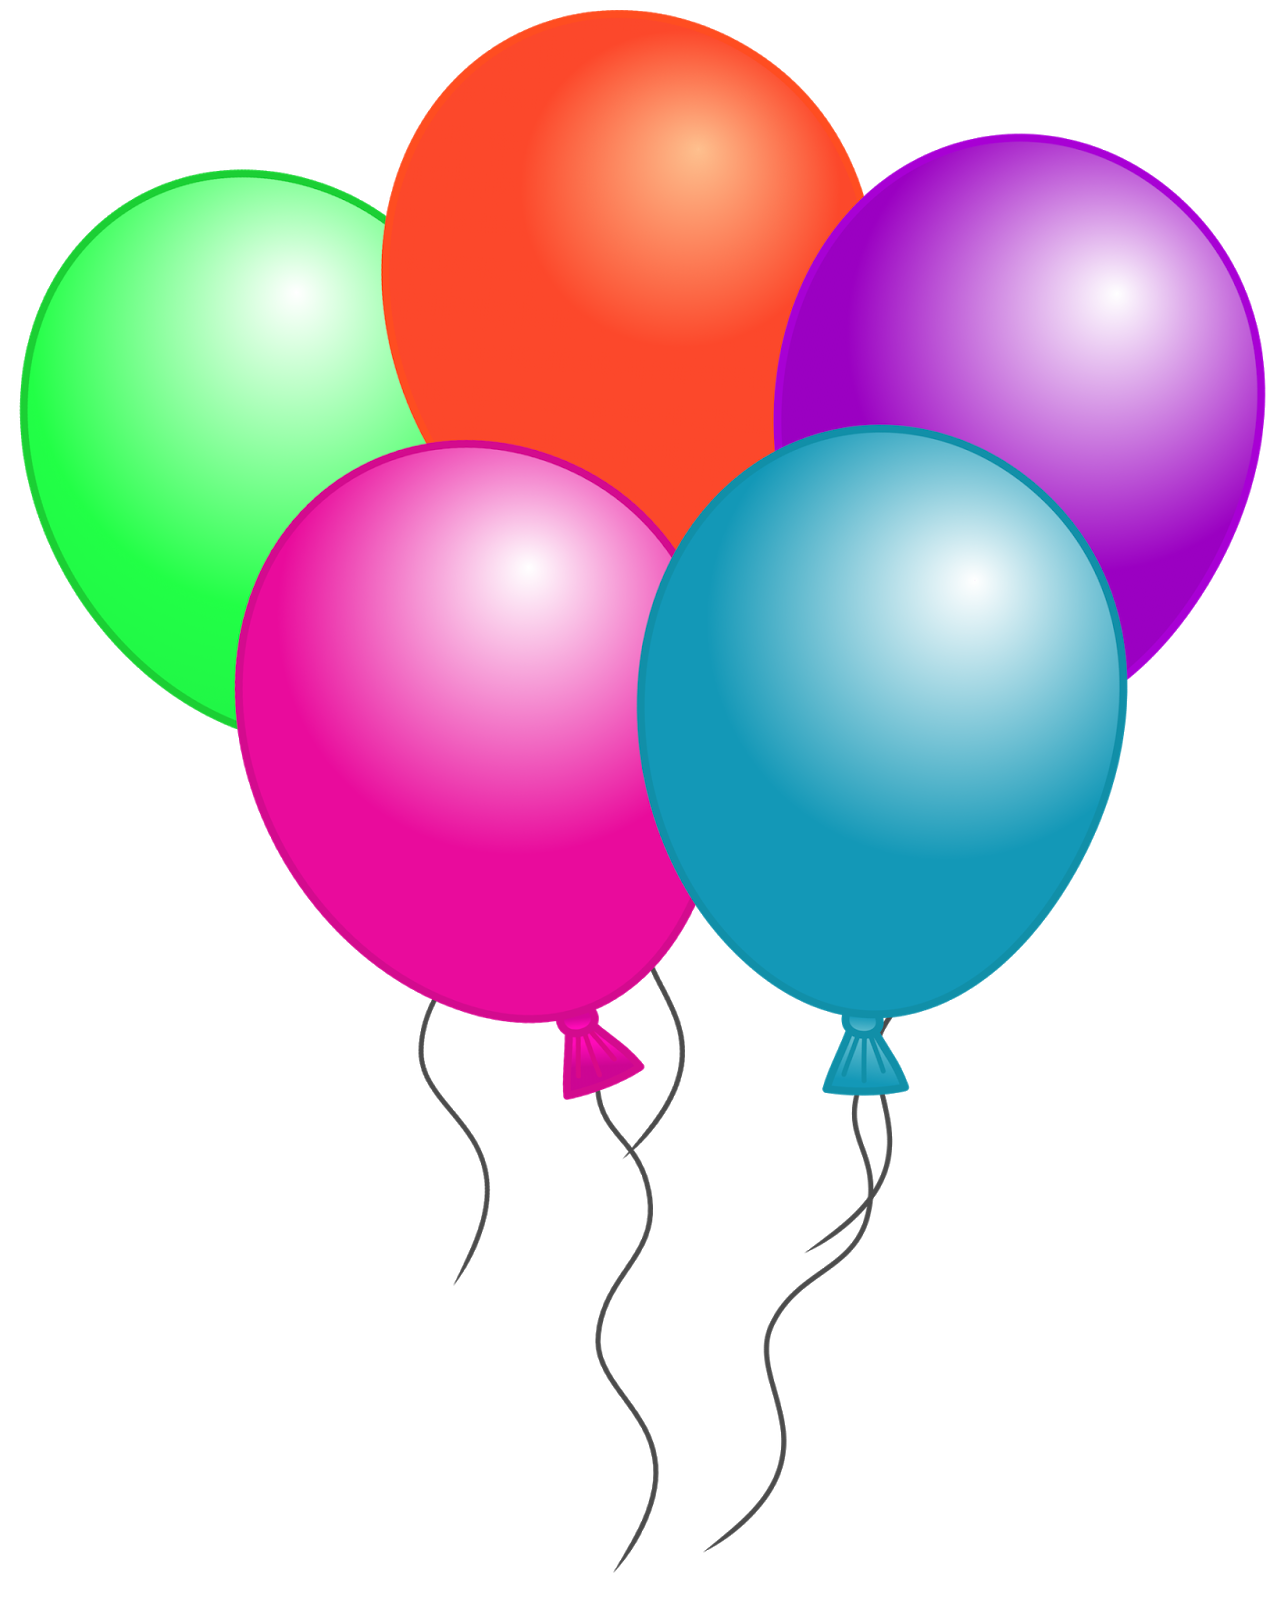 Balloon Clipart Png Clipart P - Birthday Balloons Clip Art